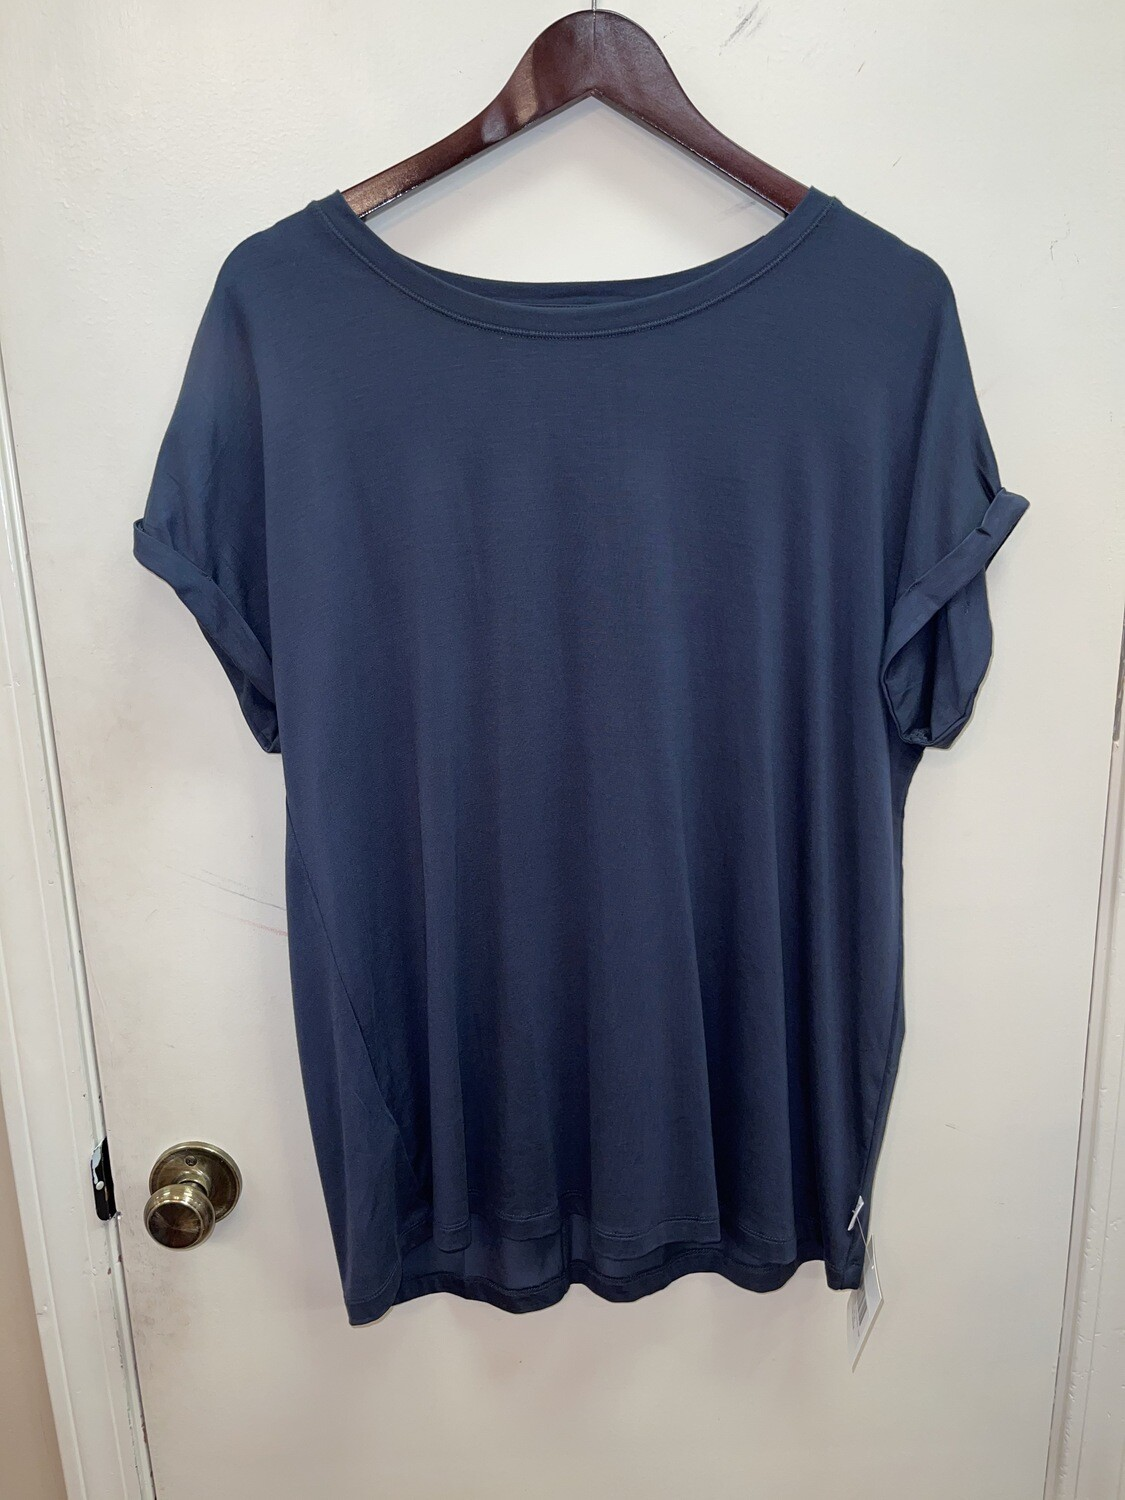 Boody: Downtime Lounge Top Navy